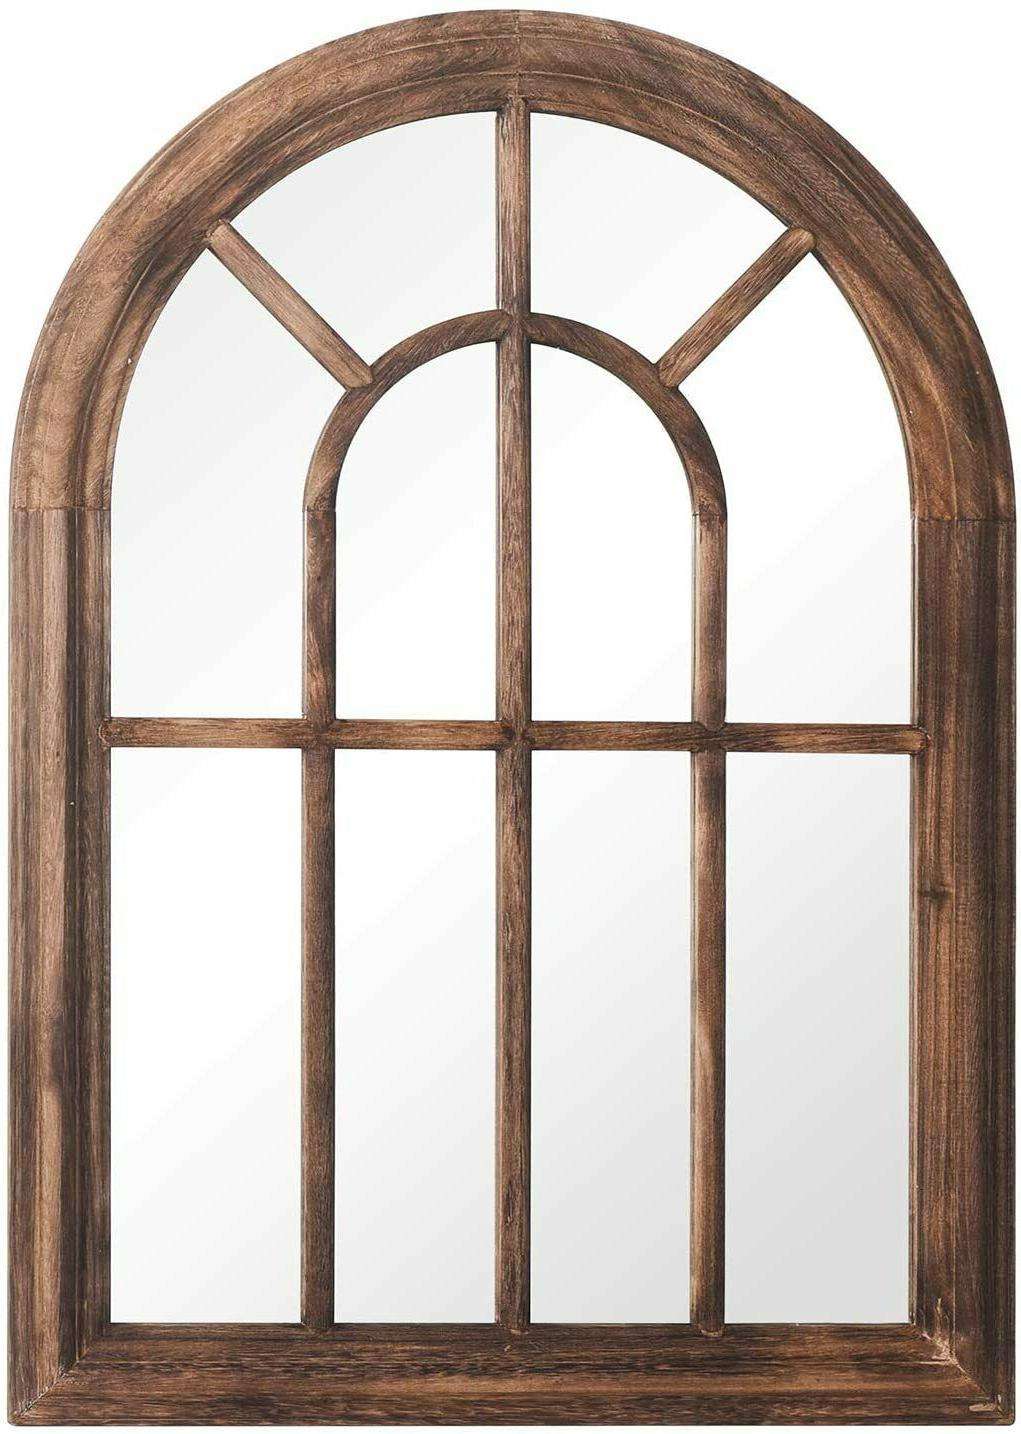 Fashion Torched Mirror Frame Arched Wall Home New